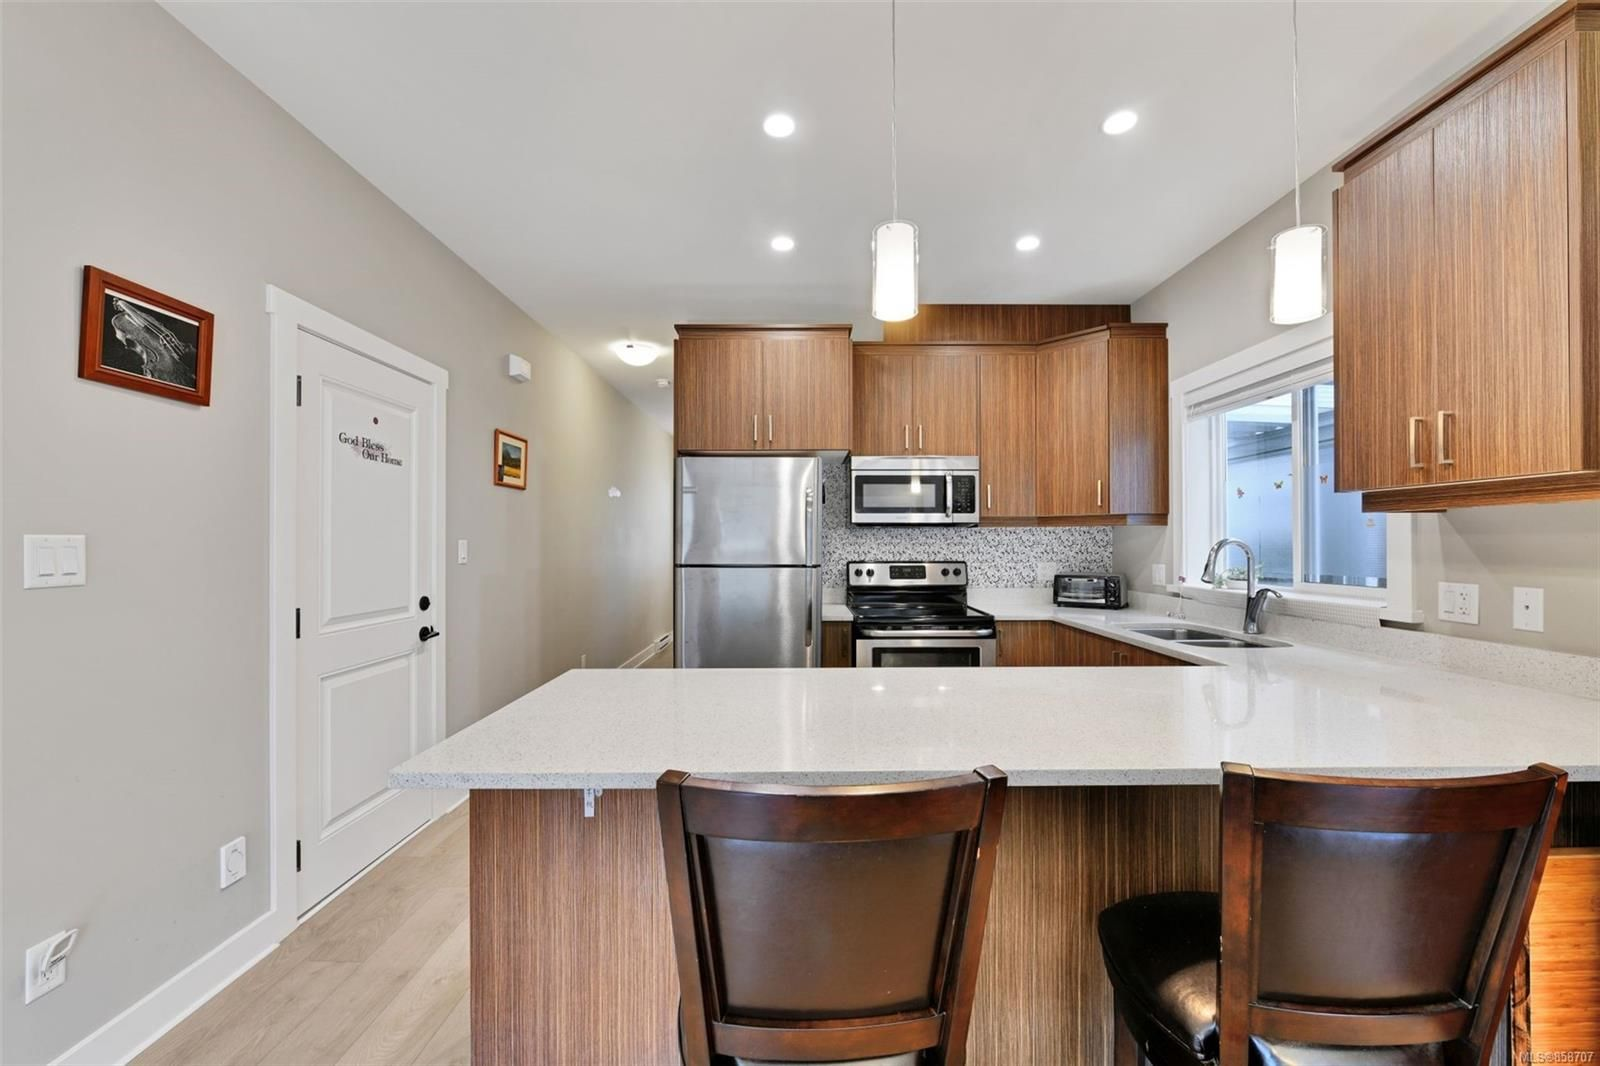 Photo 6: Photos: 1262 McLeod Pl in : La Happy Valley House for sale (Langford)  : MLS®# 858707